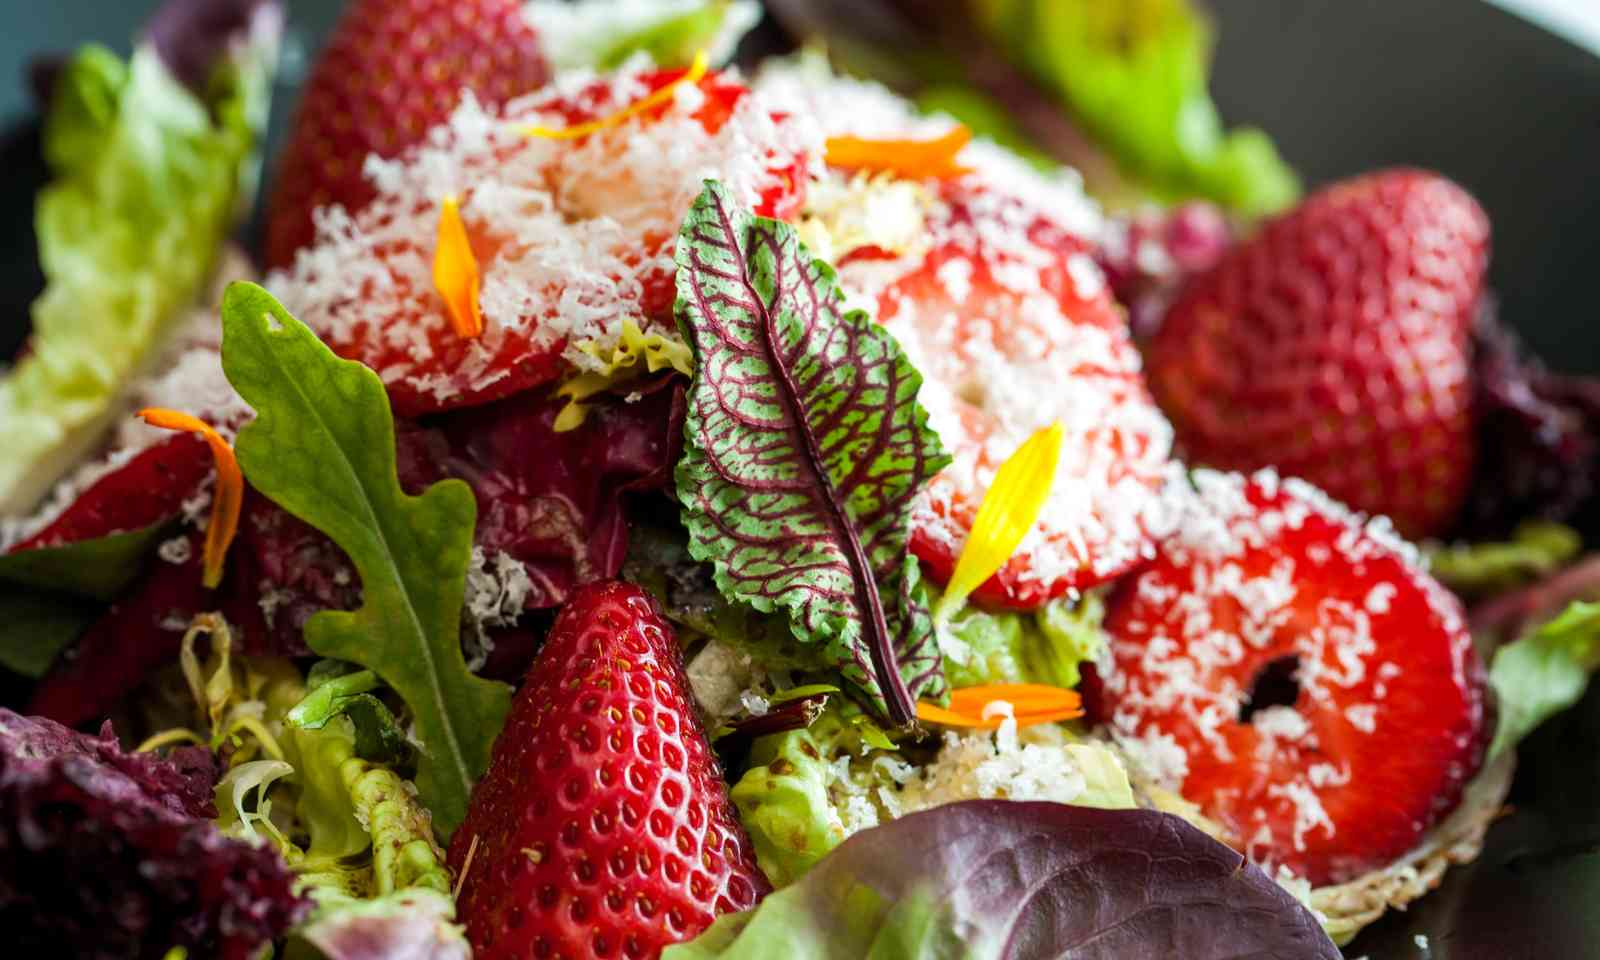 Strawberry salad (Shutterstock.com)